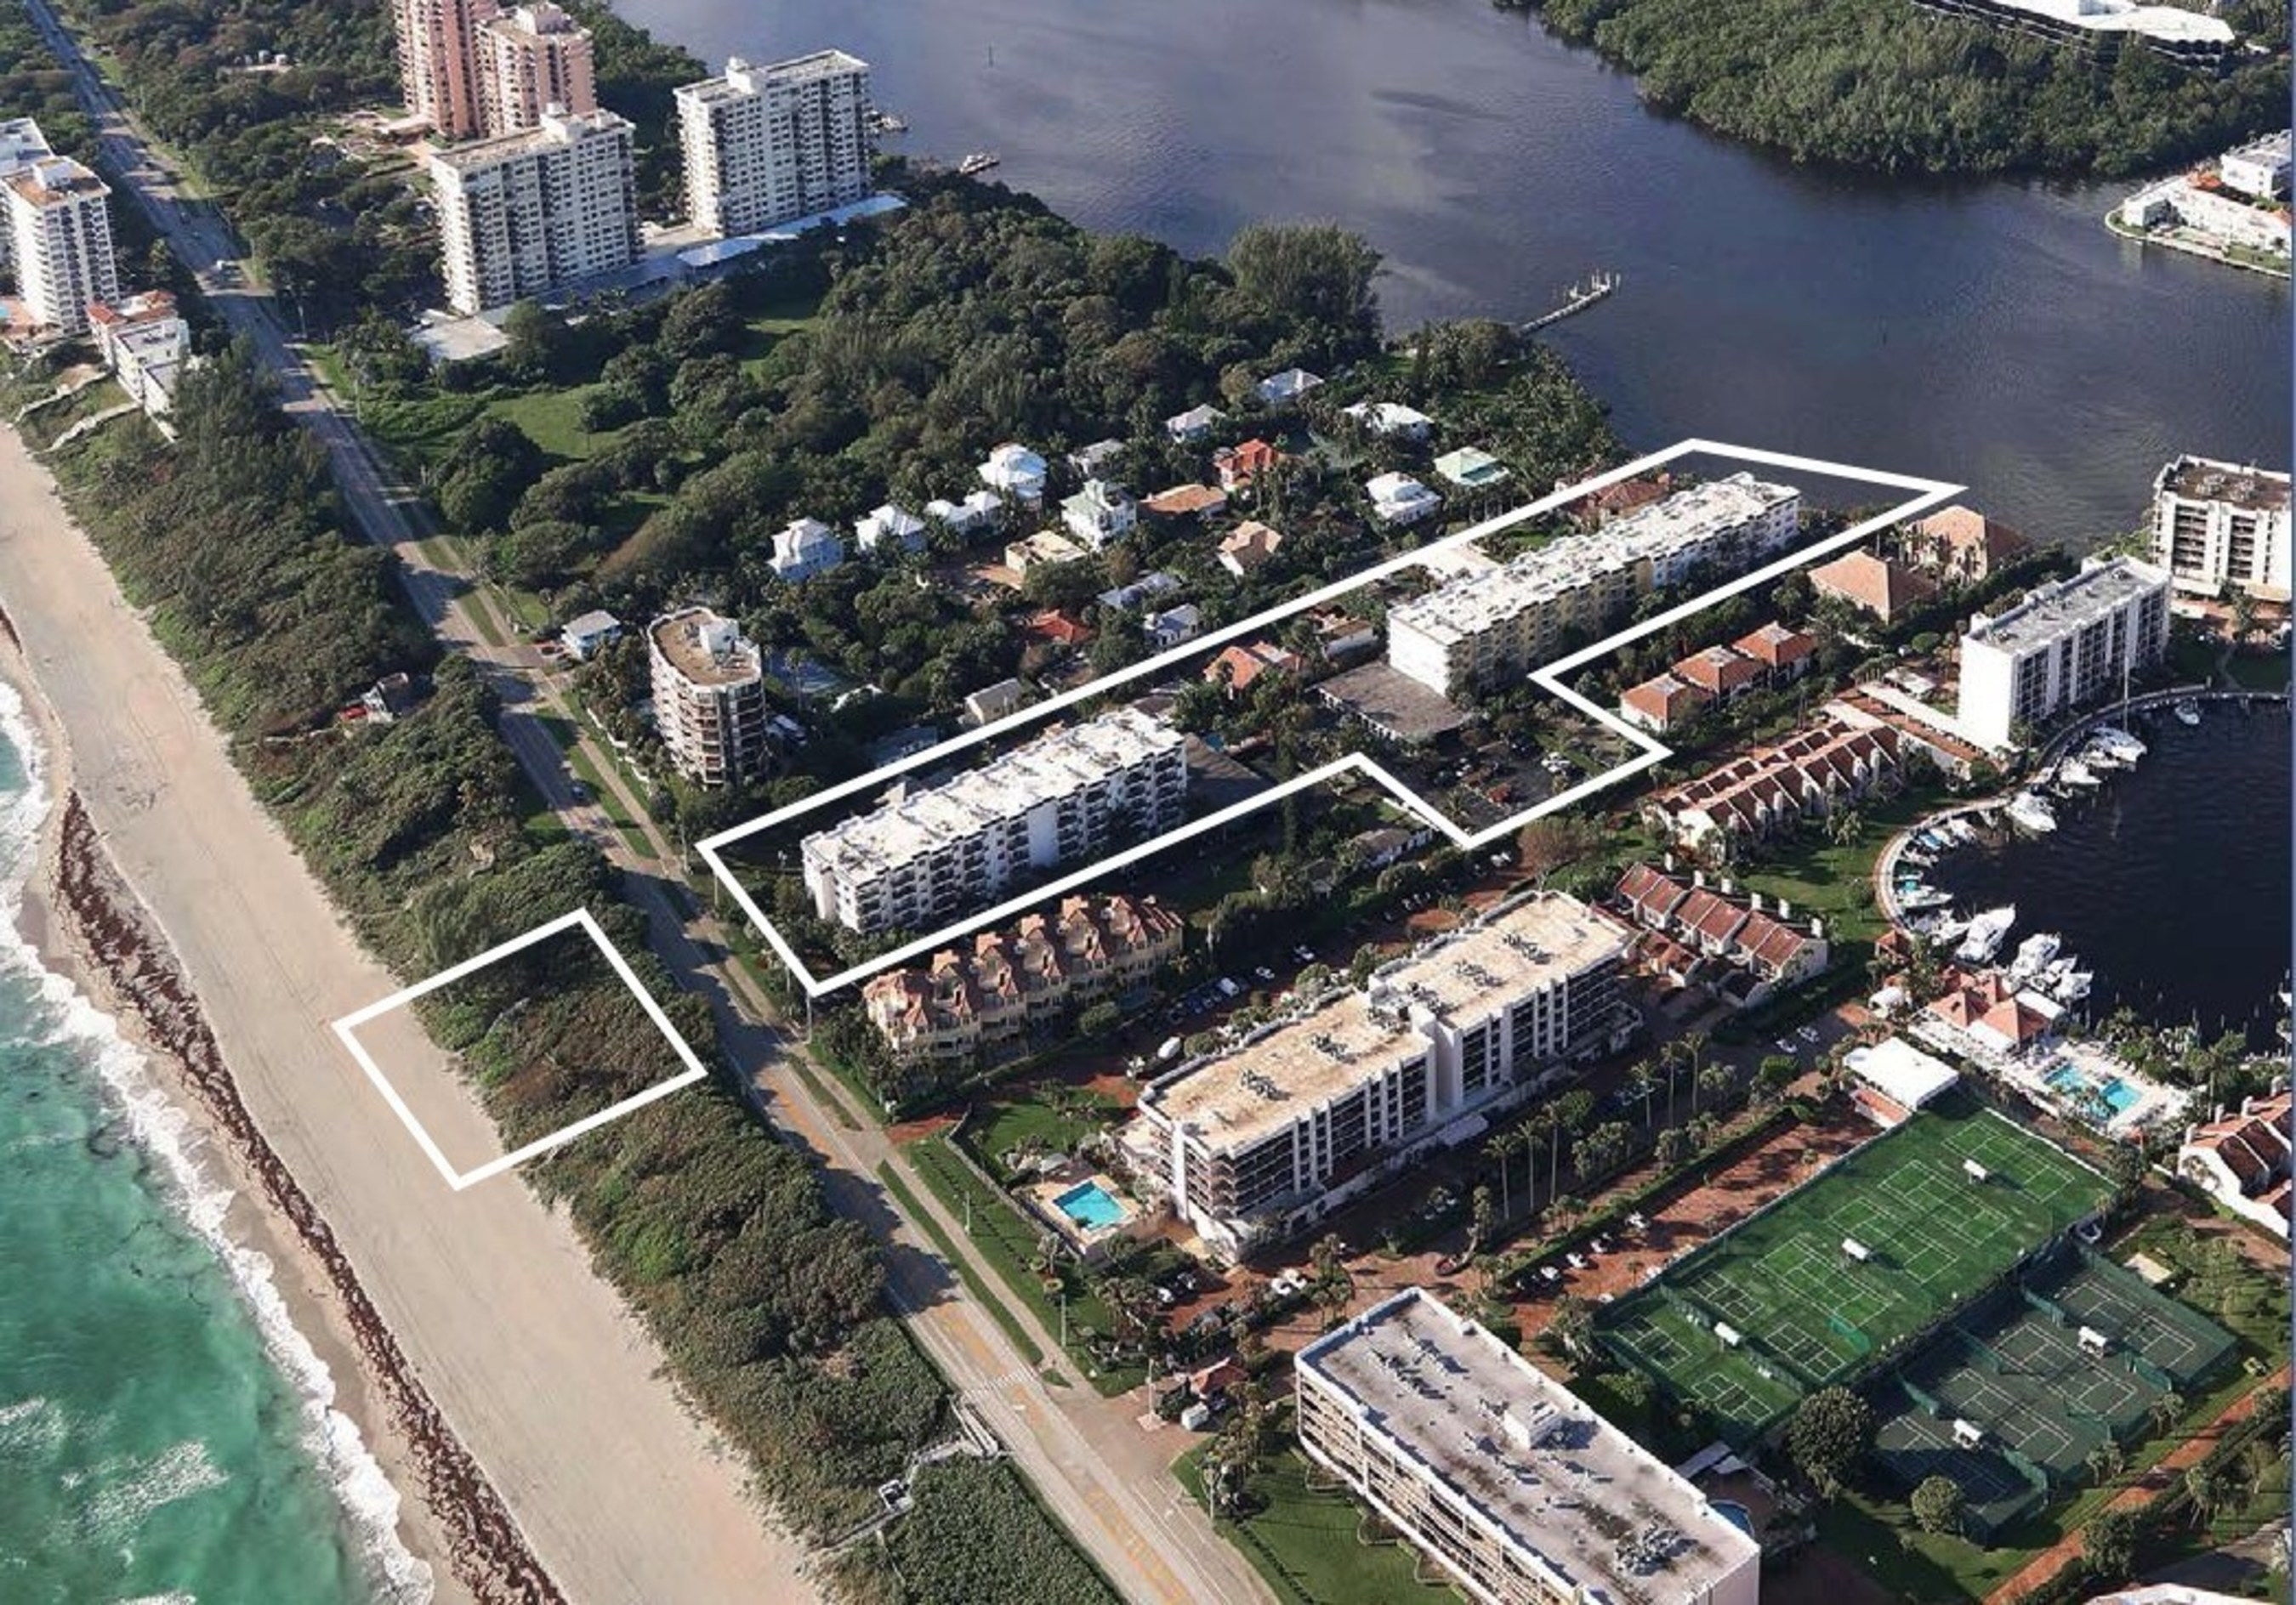 TGM Associates Acquires Mutlifamily Ocean Front Community With Boat Slips In Boca Raton, FL